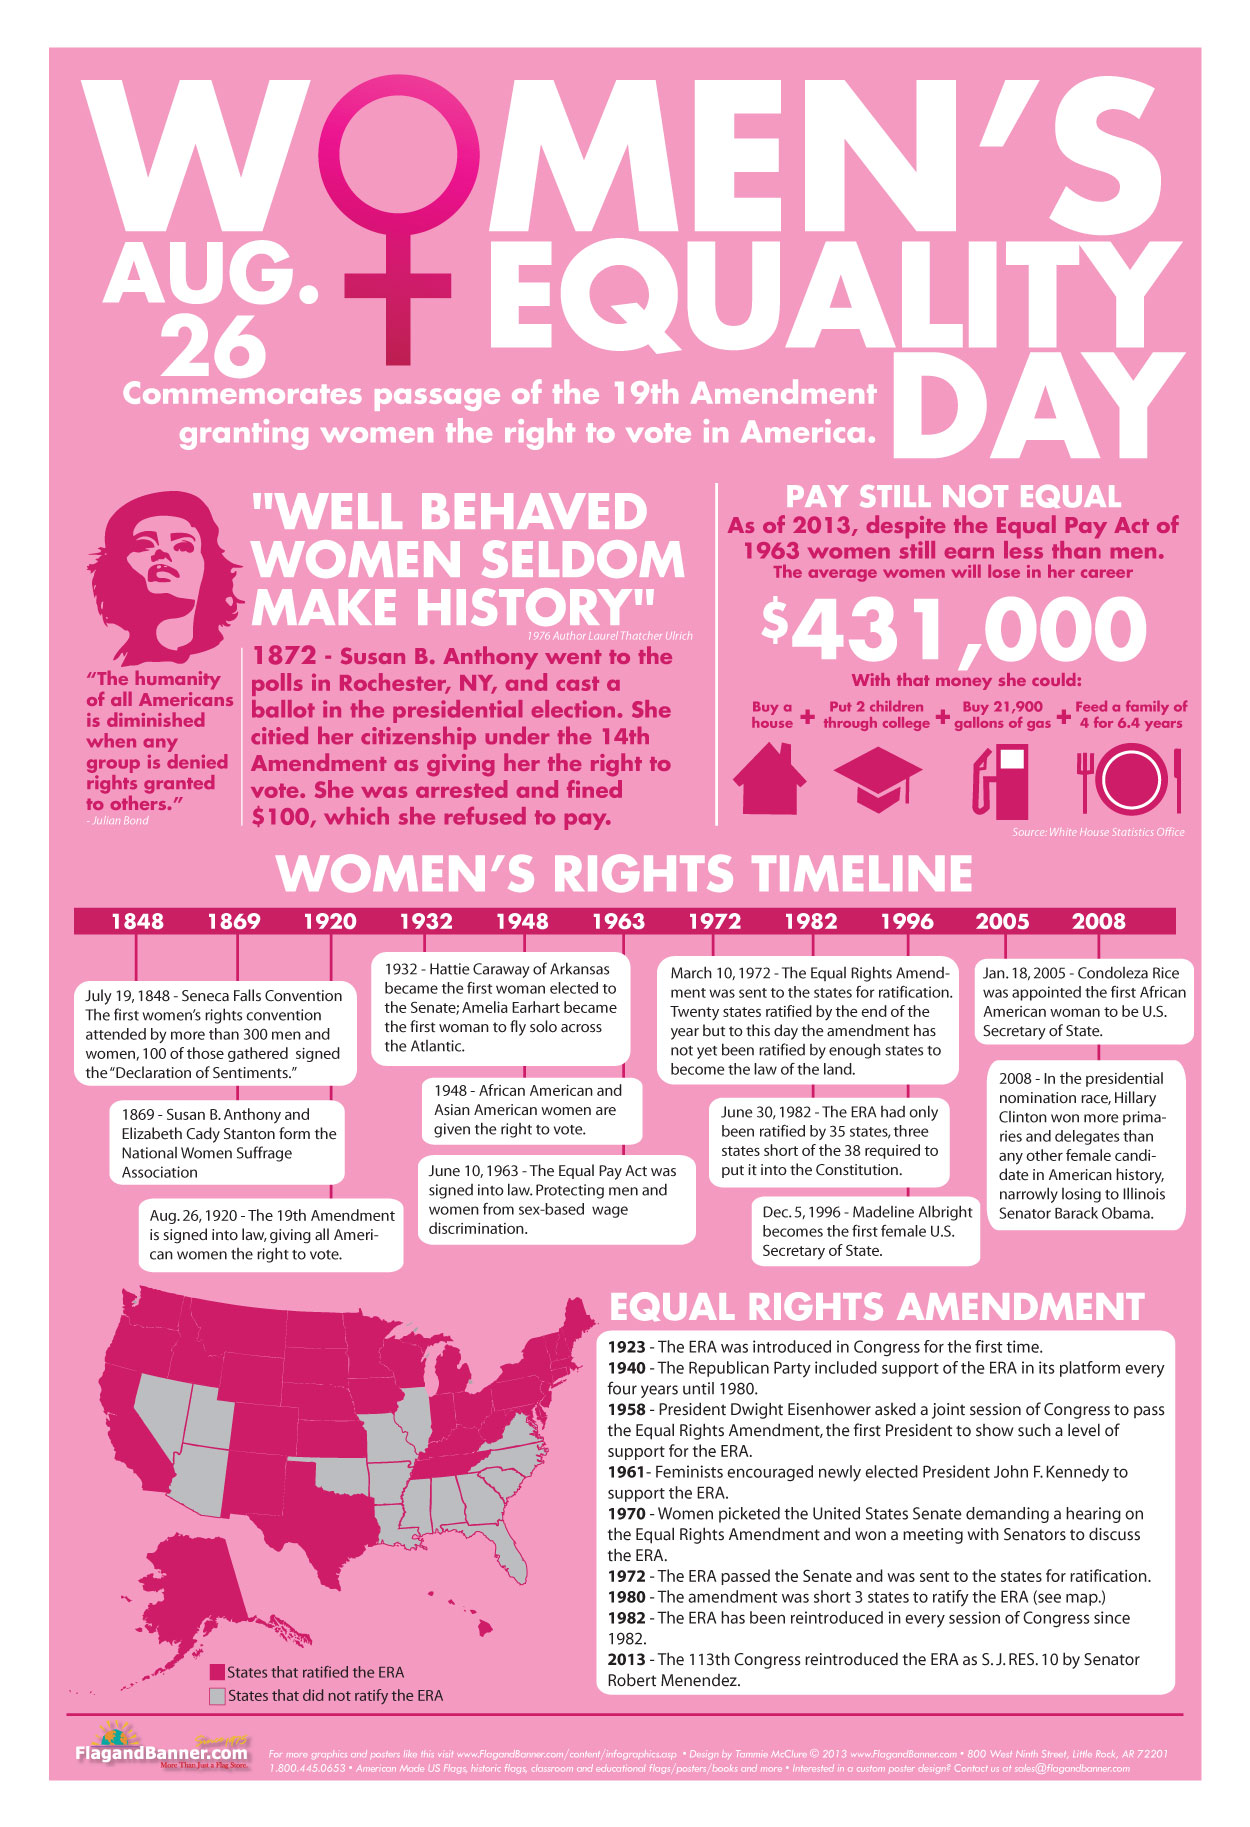 a discussion on the equality of women In the us: the equal pay act of 1963, title vii of the civil rights act of 1964, title ix and the women's educational equity act (1972 and 1975), title x (1970, health and family planning), the equal credit opportunity act (1974), the pregnancy discrimination act of 1978, and landmark supreme court cases overturning anti-abortion legislation.